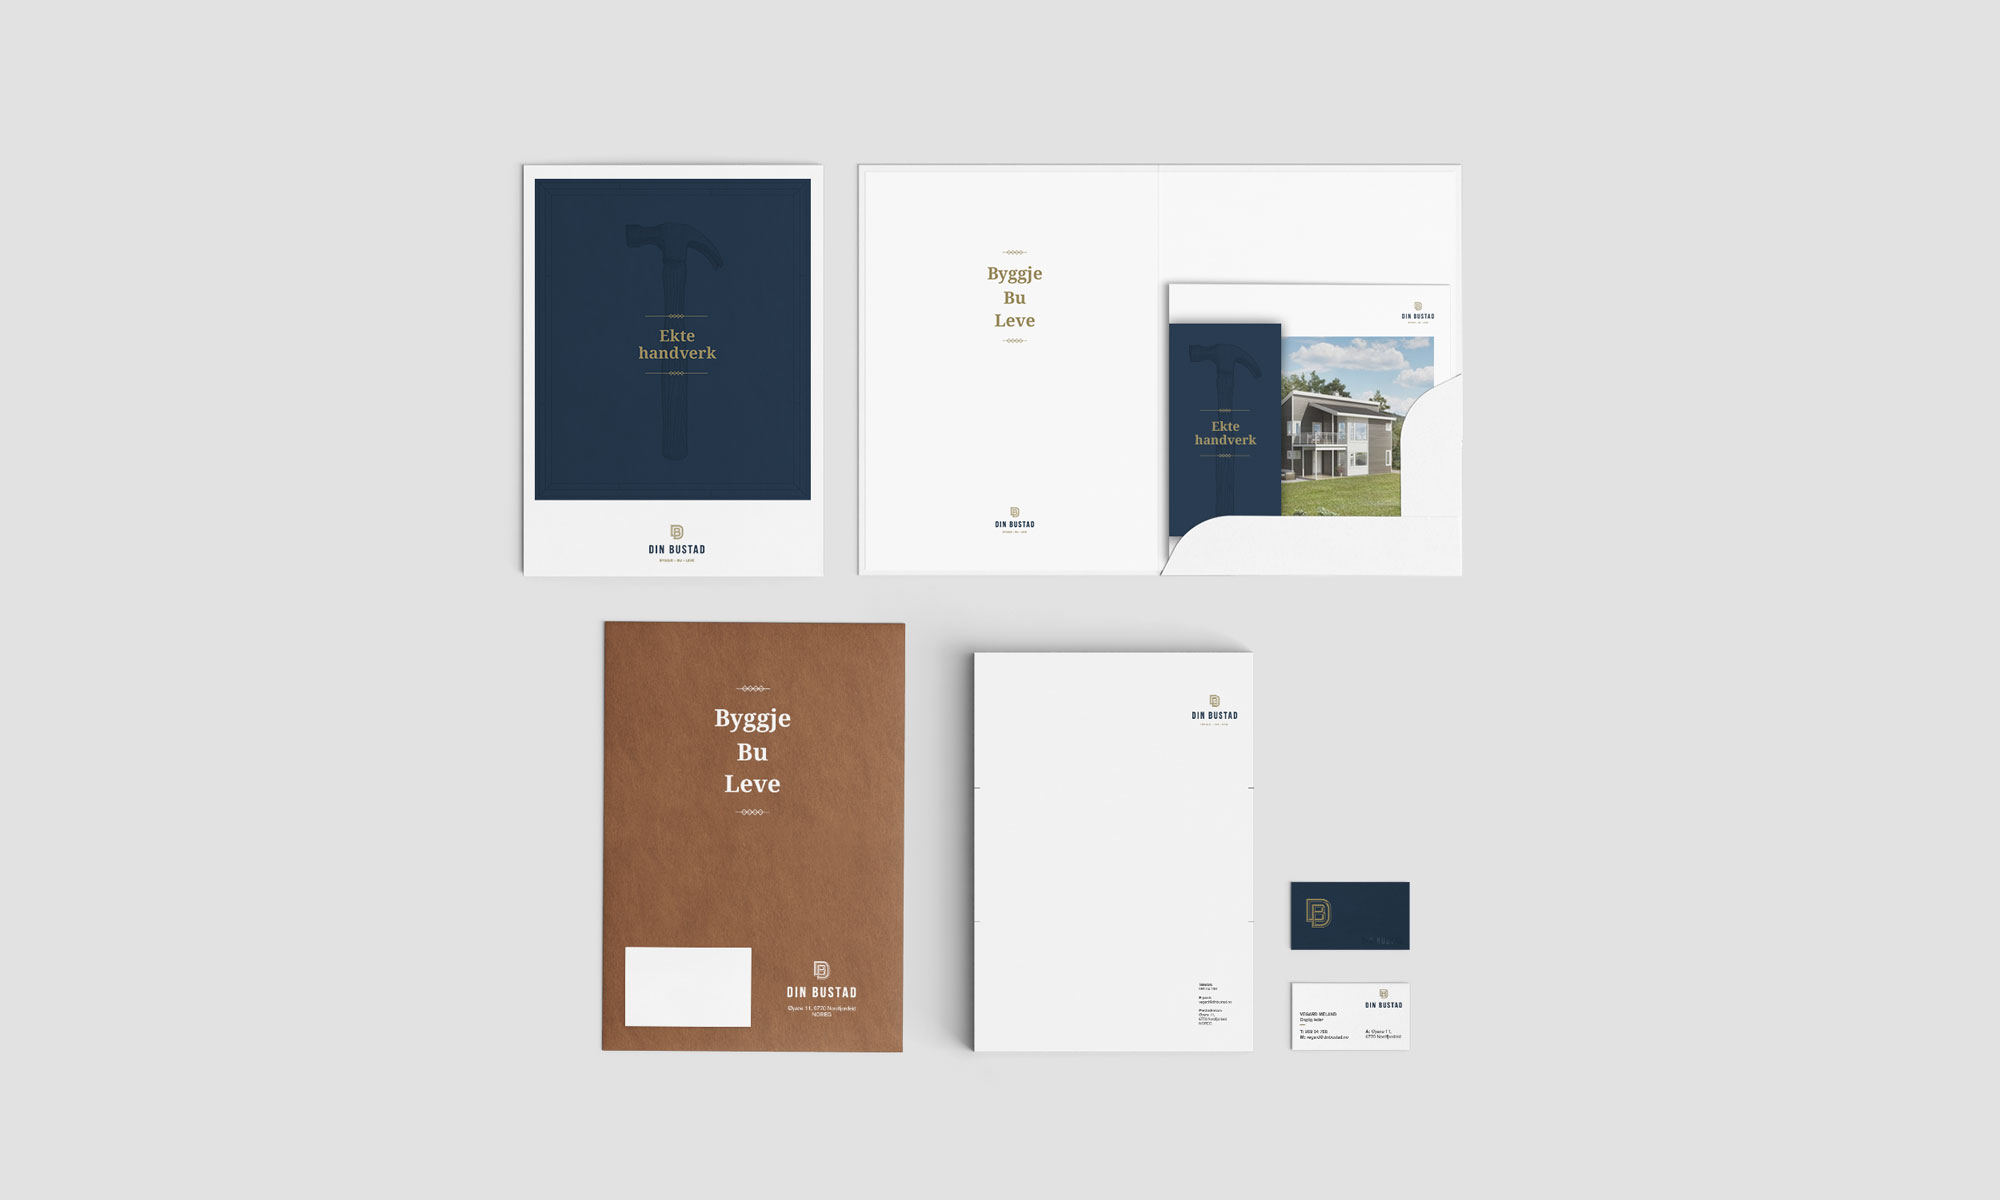 Din Bustad visual identity, designed by SBDS